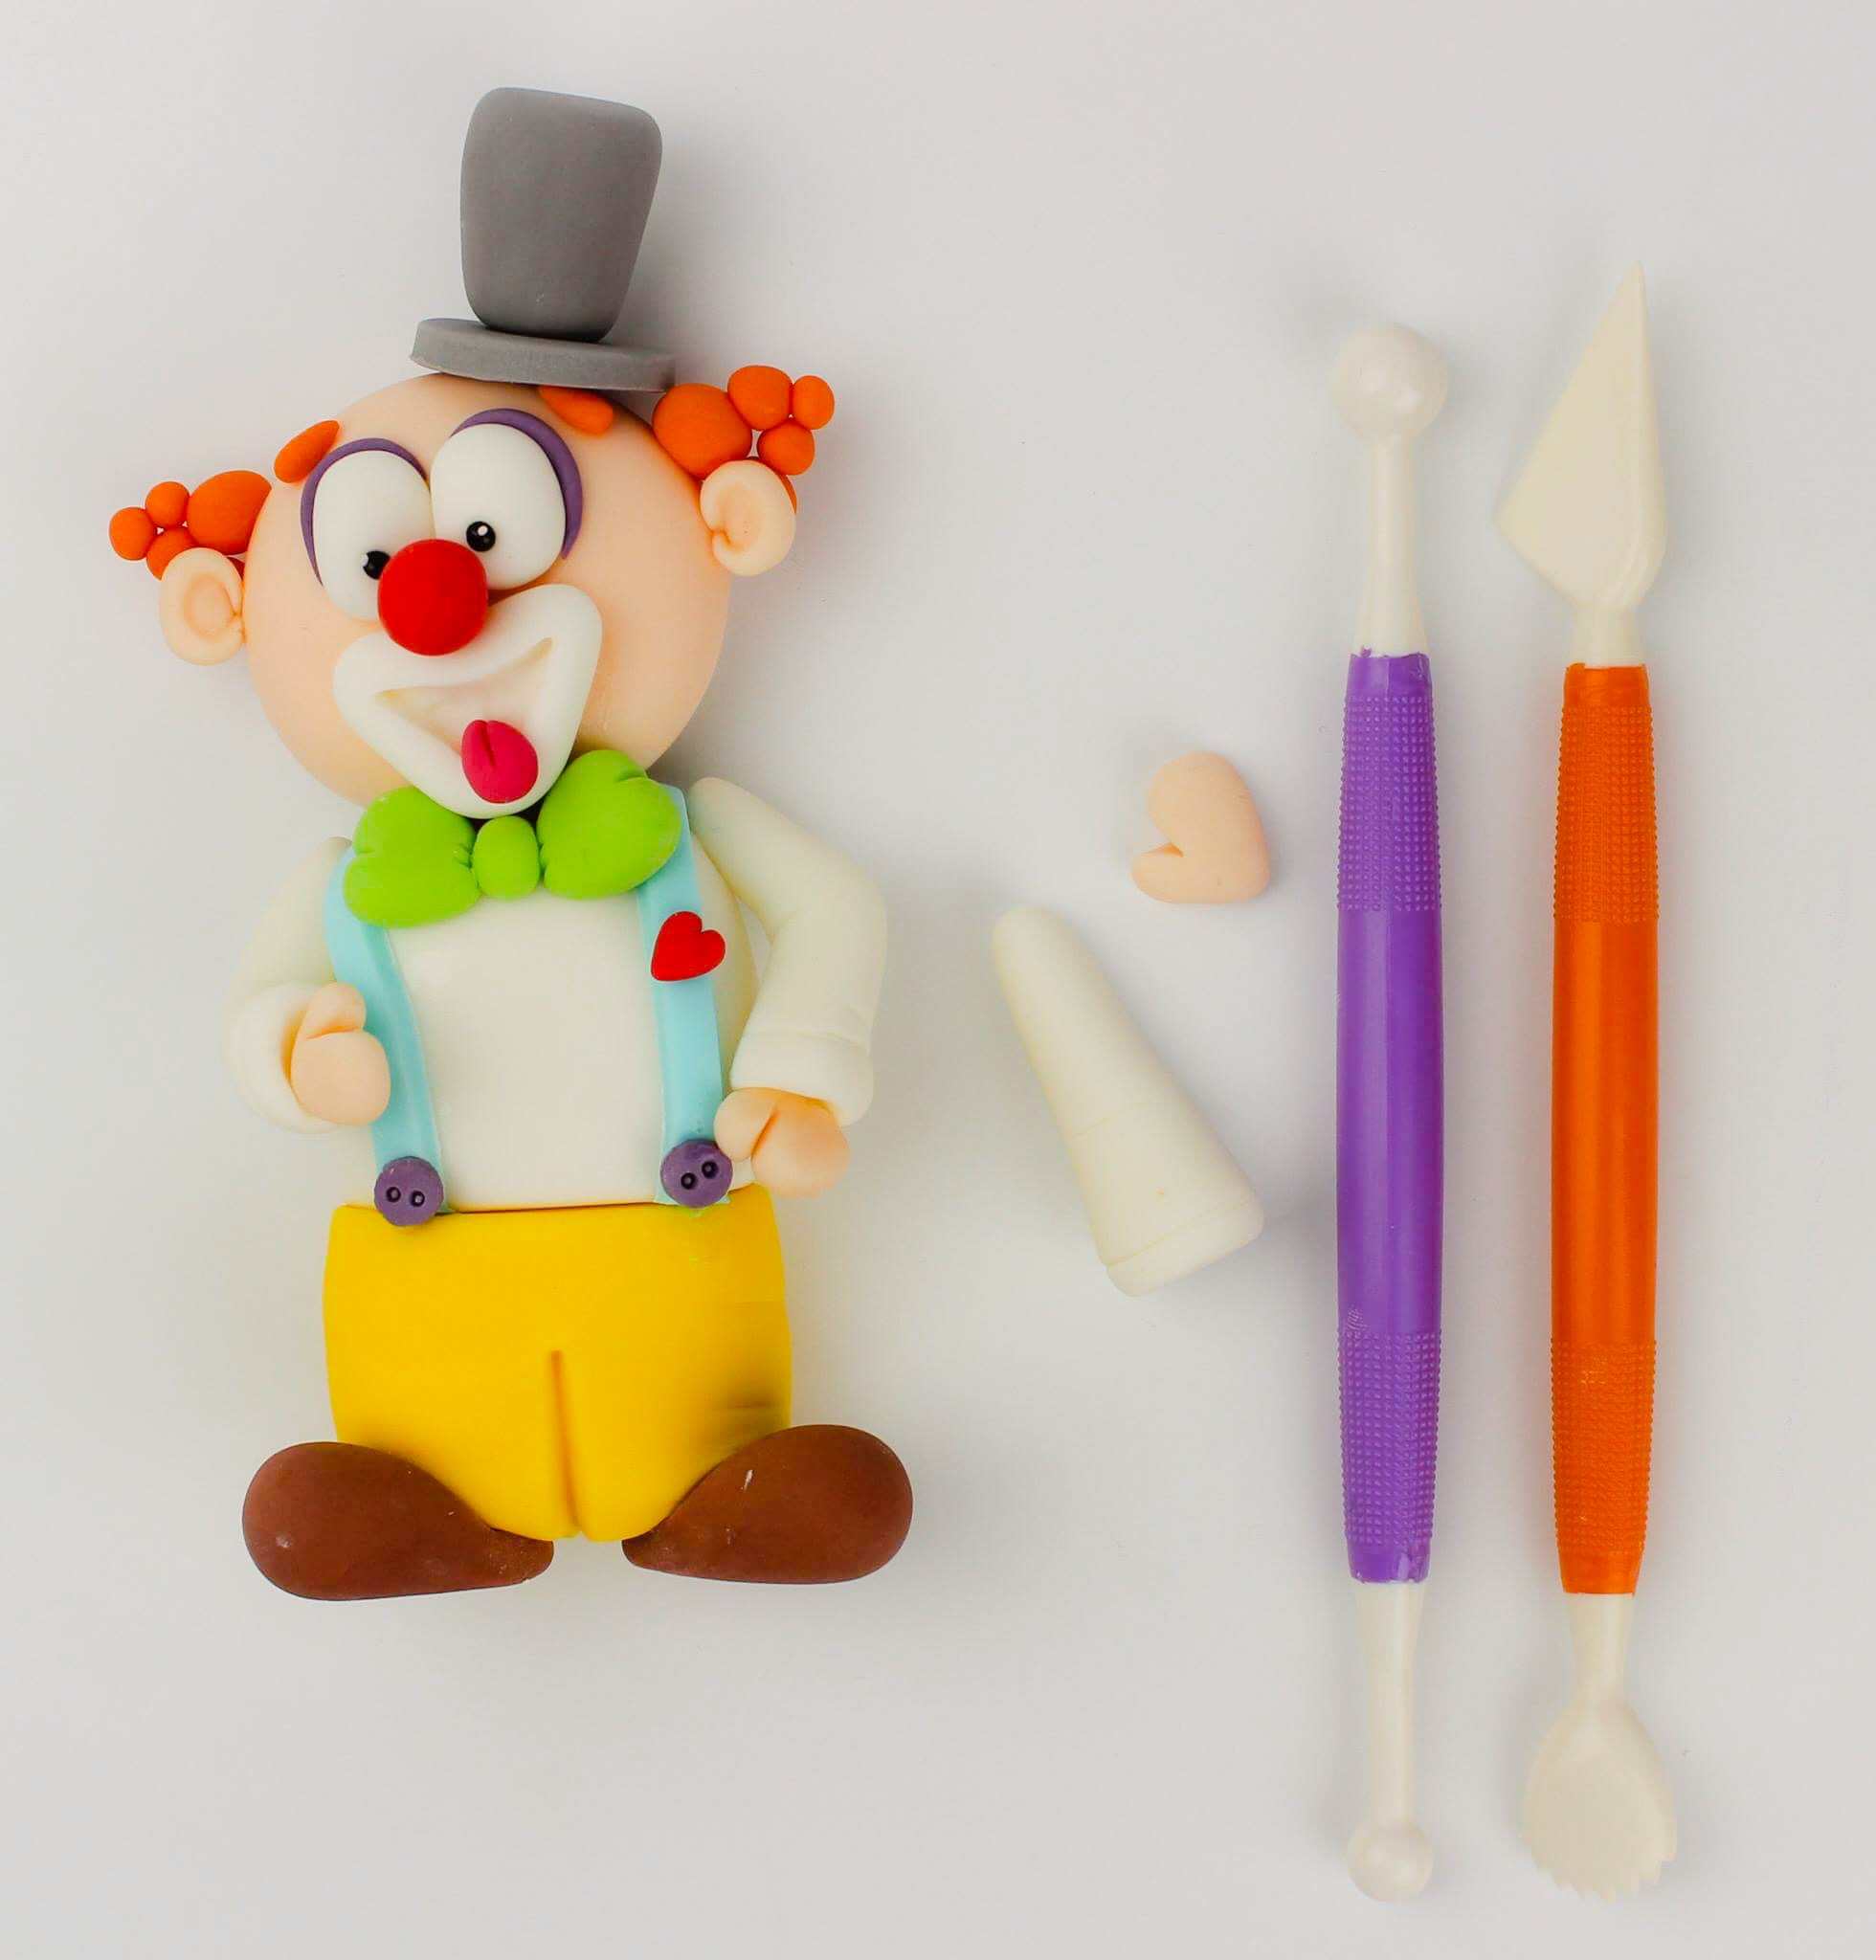 clown-16.JPG#asset:19568